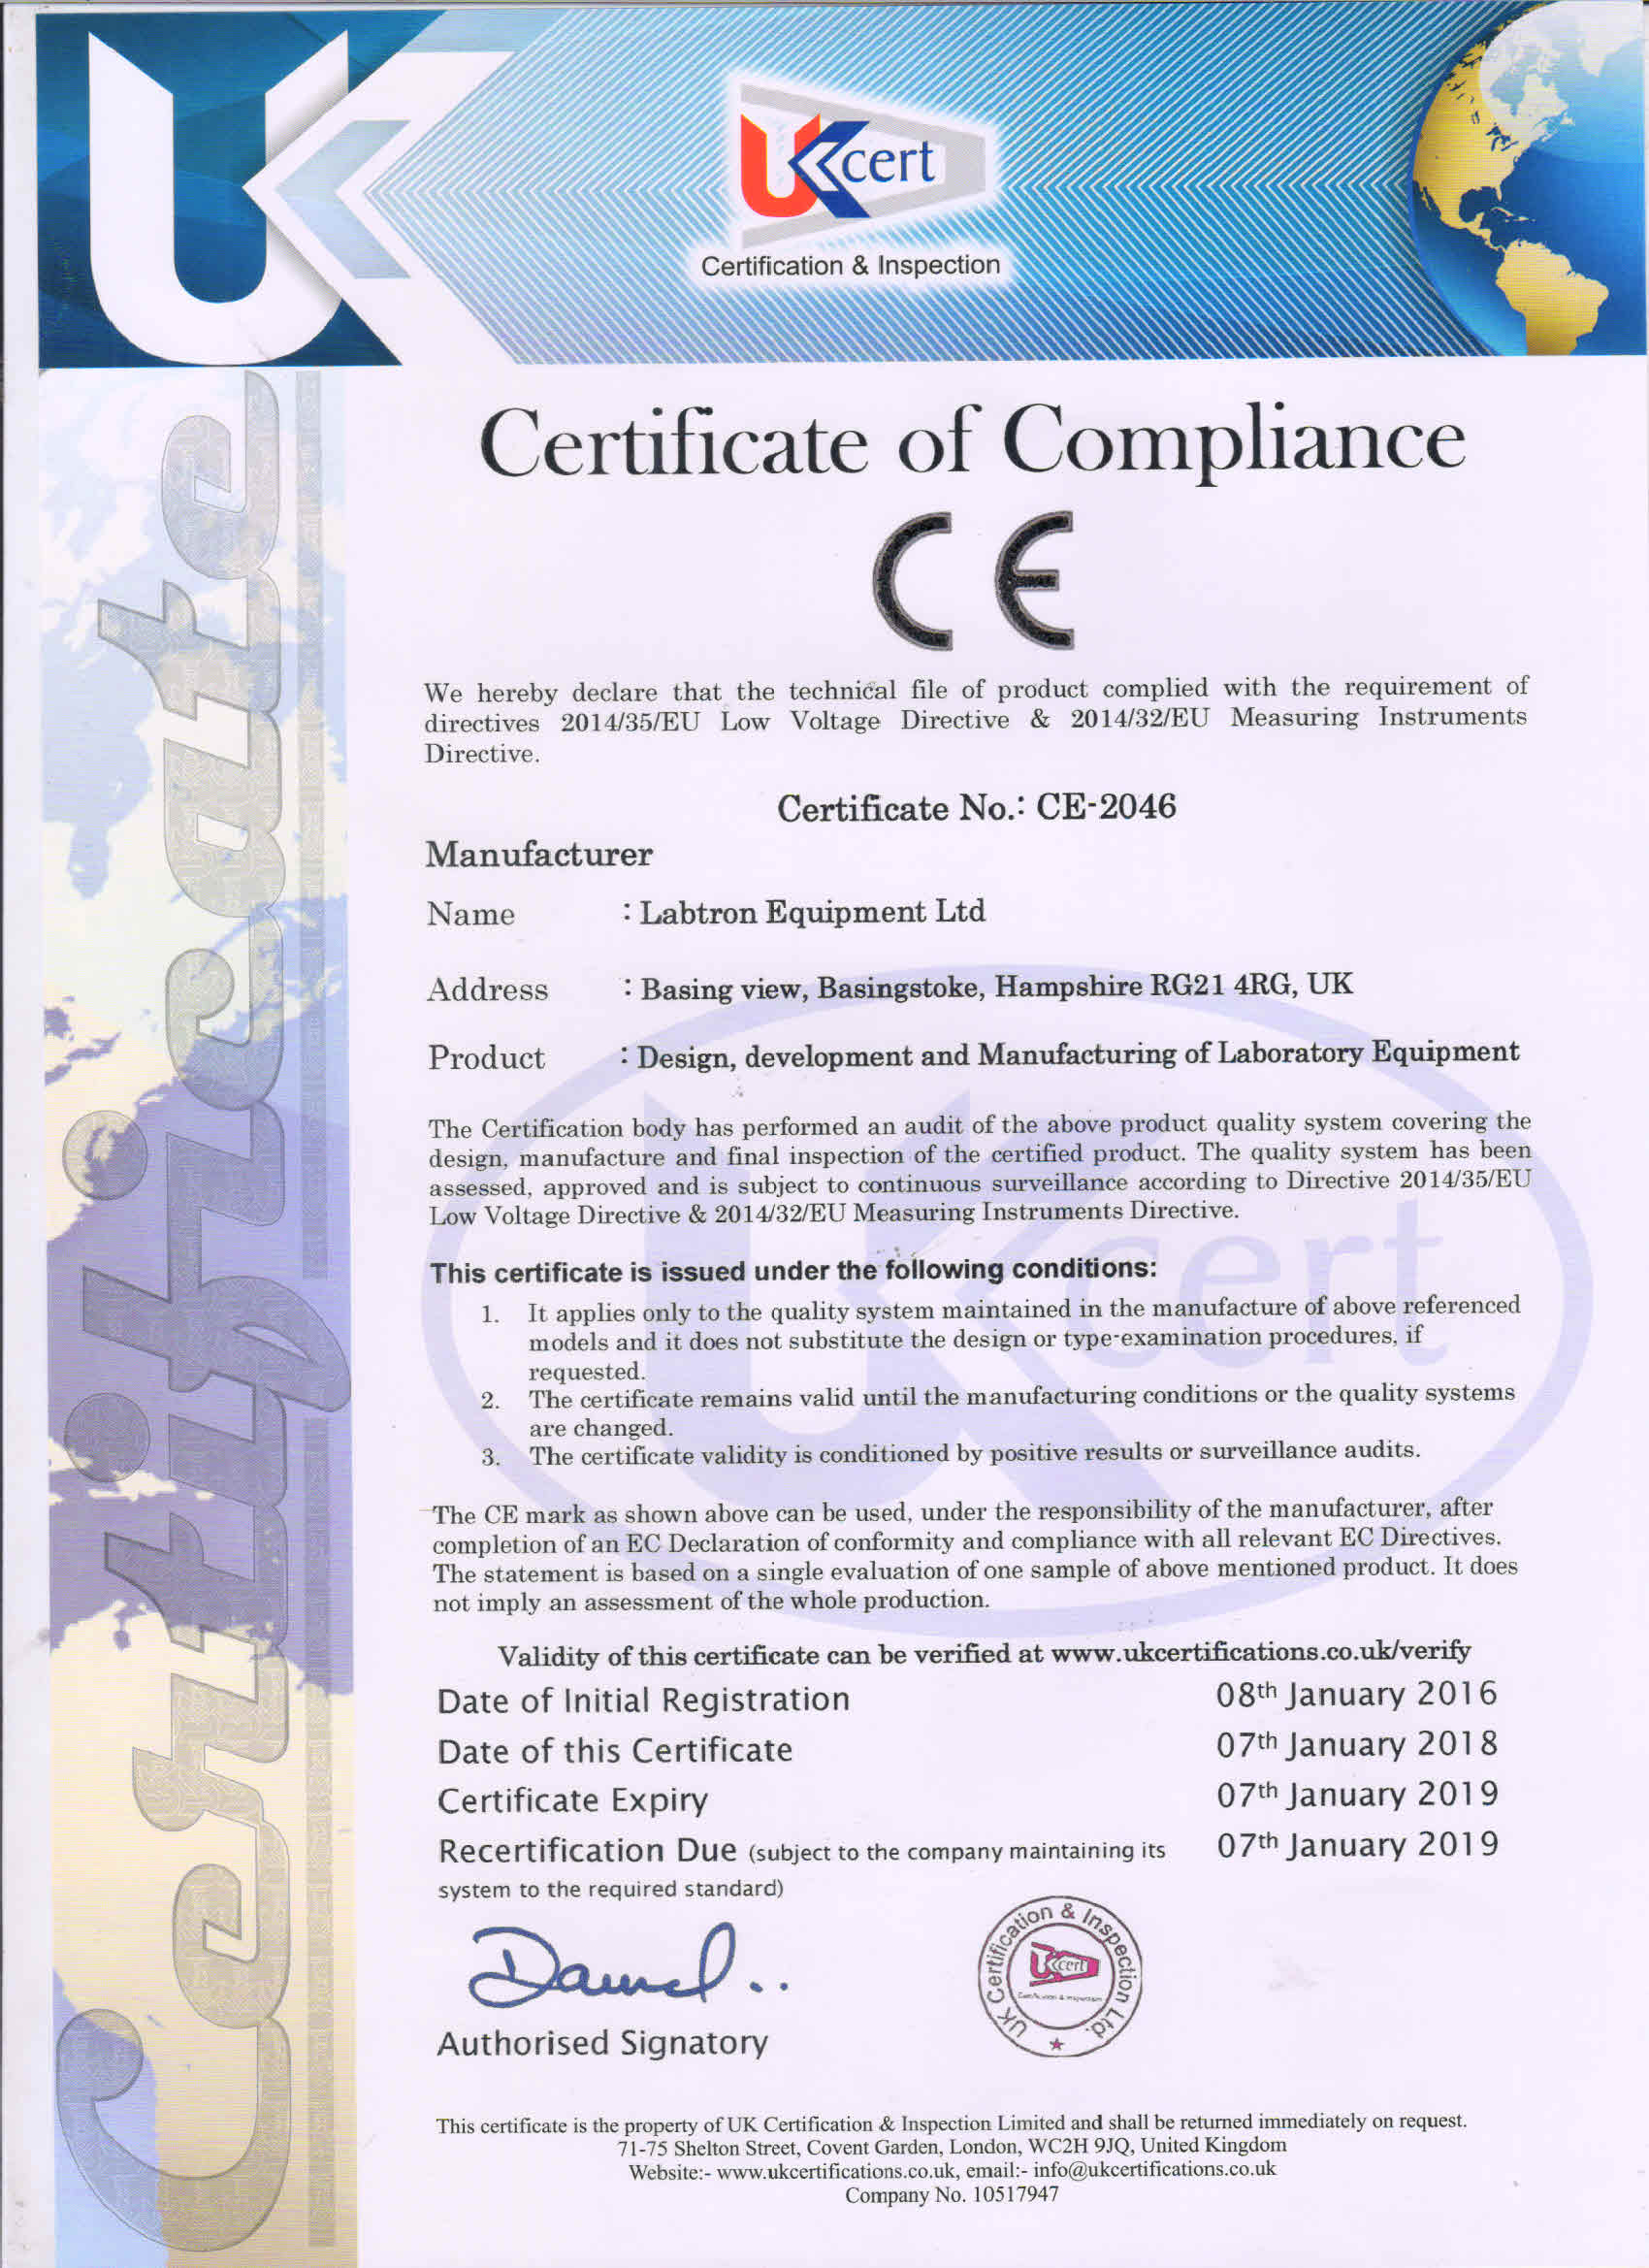 Labtron Equipment Ltd. CE-2046 : Labtron Certification